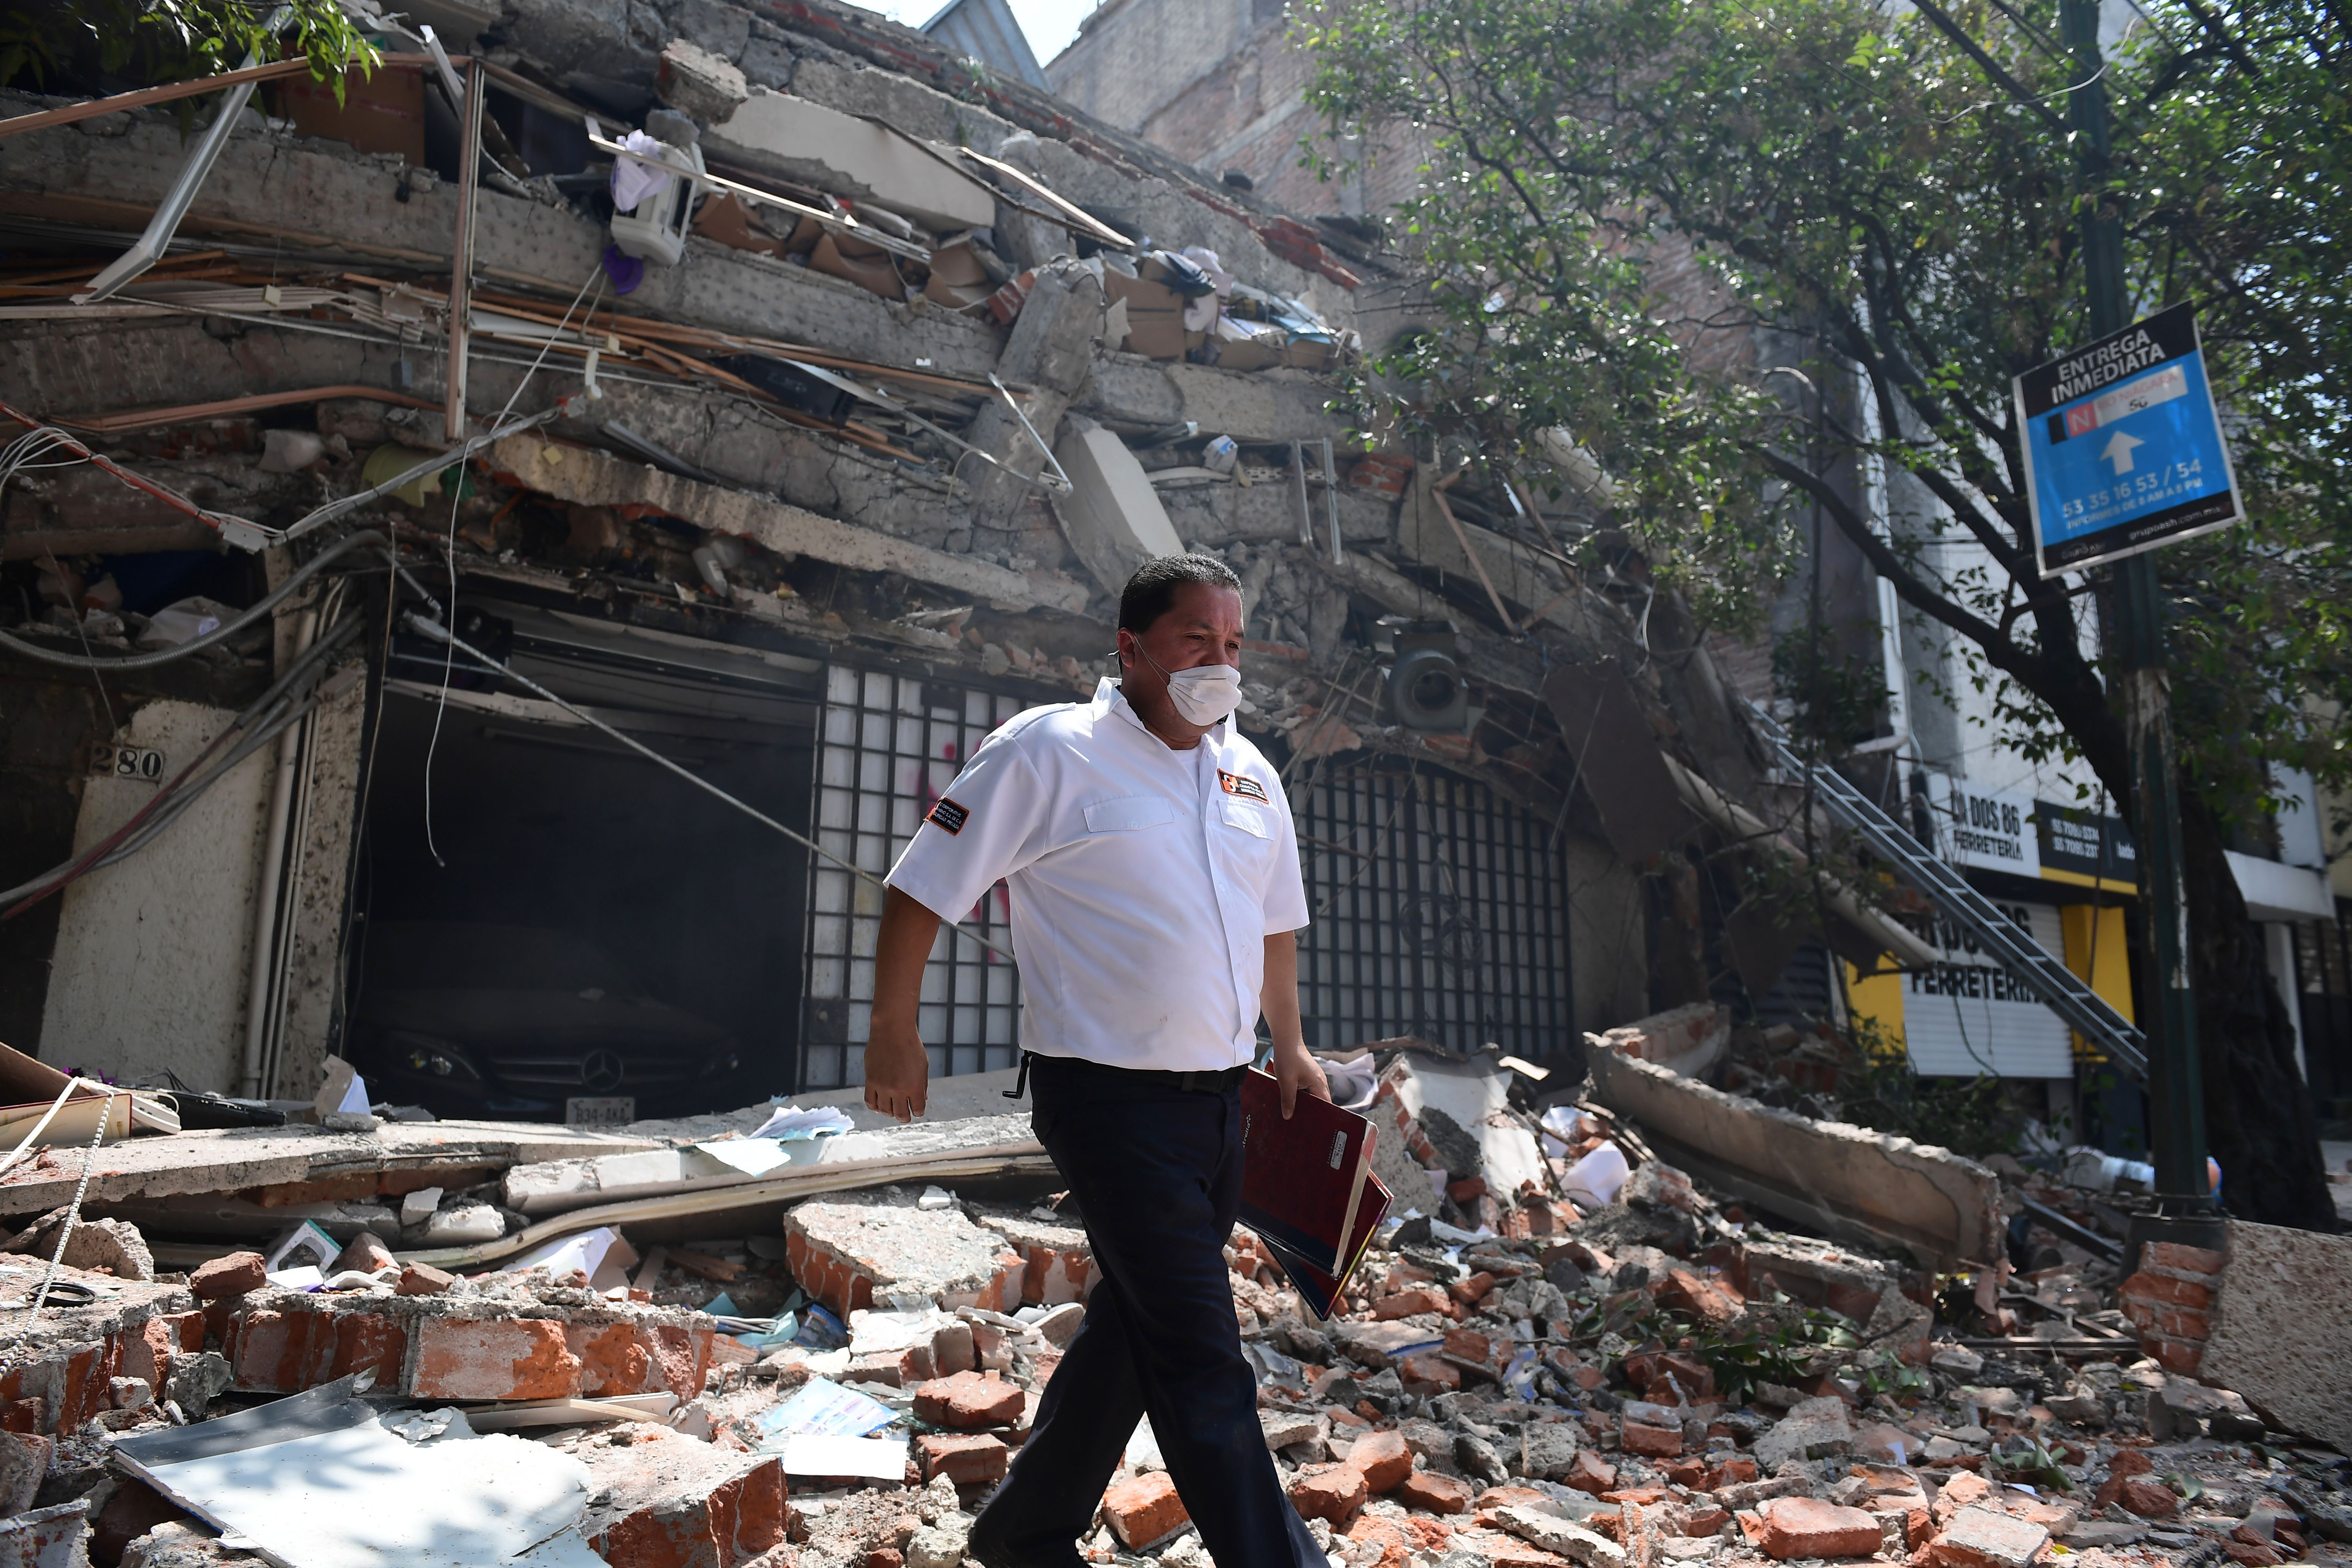 Map Us Before Mexican War%0A A security guard walks over debris of a collapsed building  RONALDO  SCHEMIDT AFP Getty Images